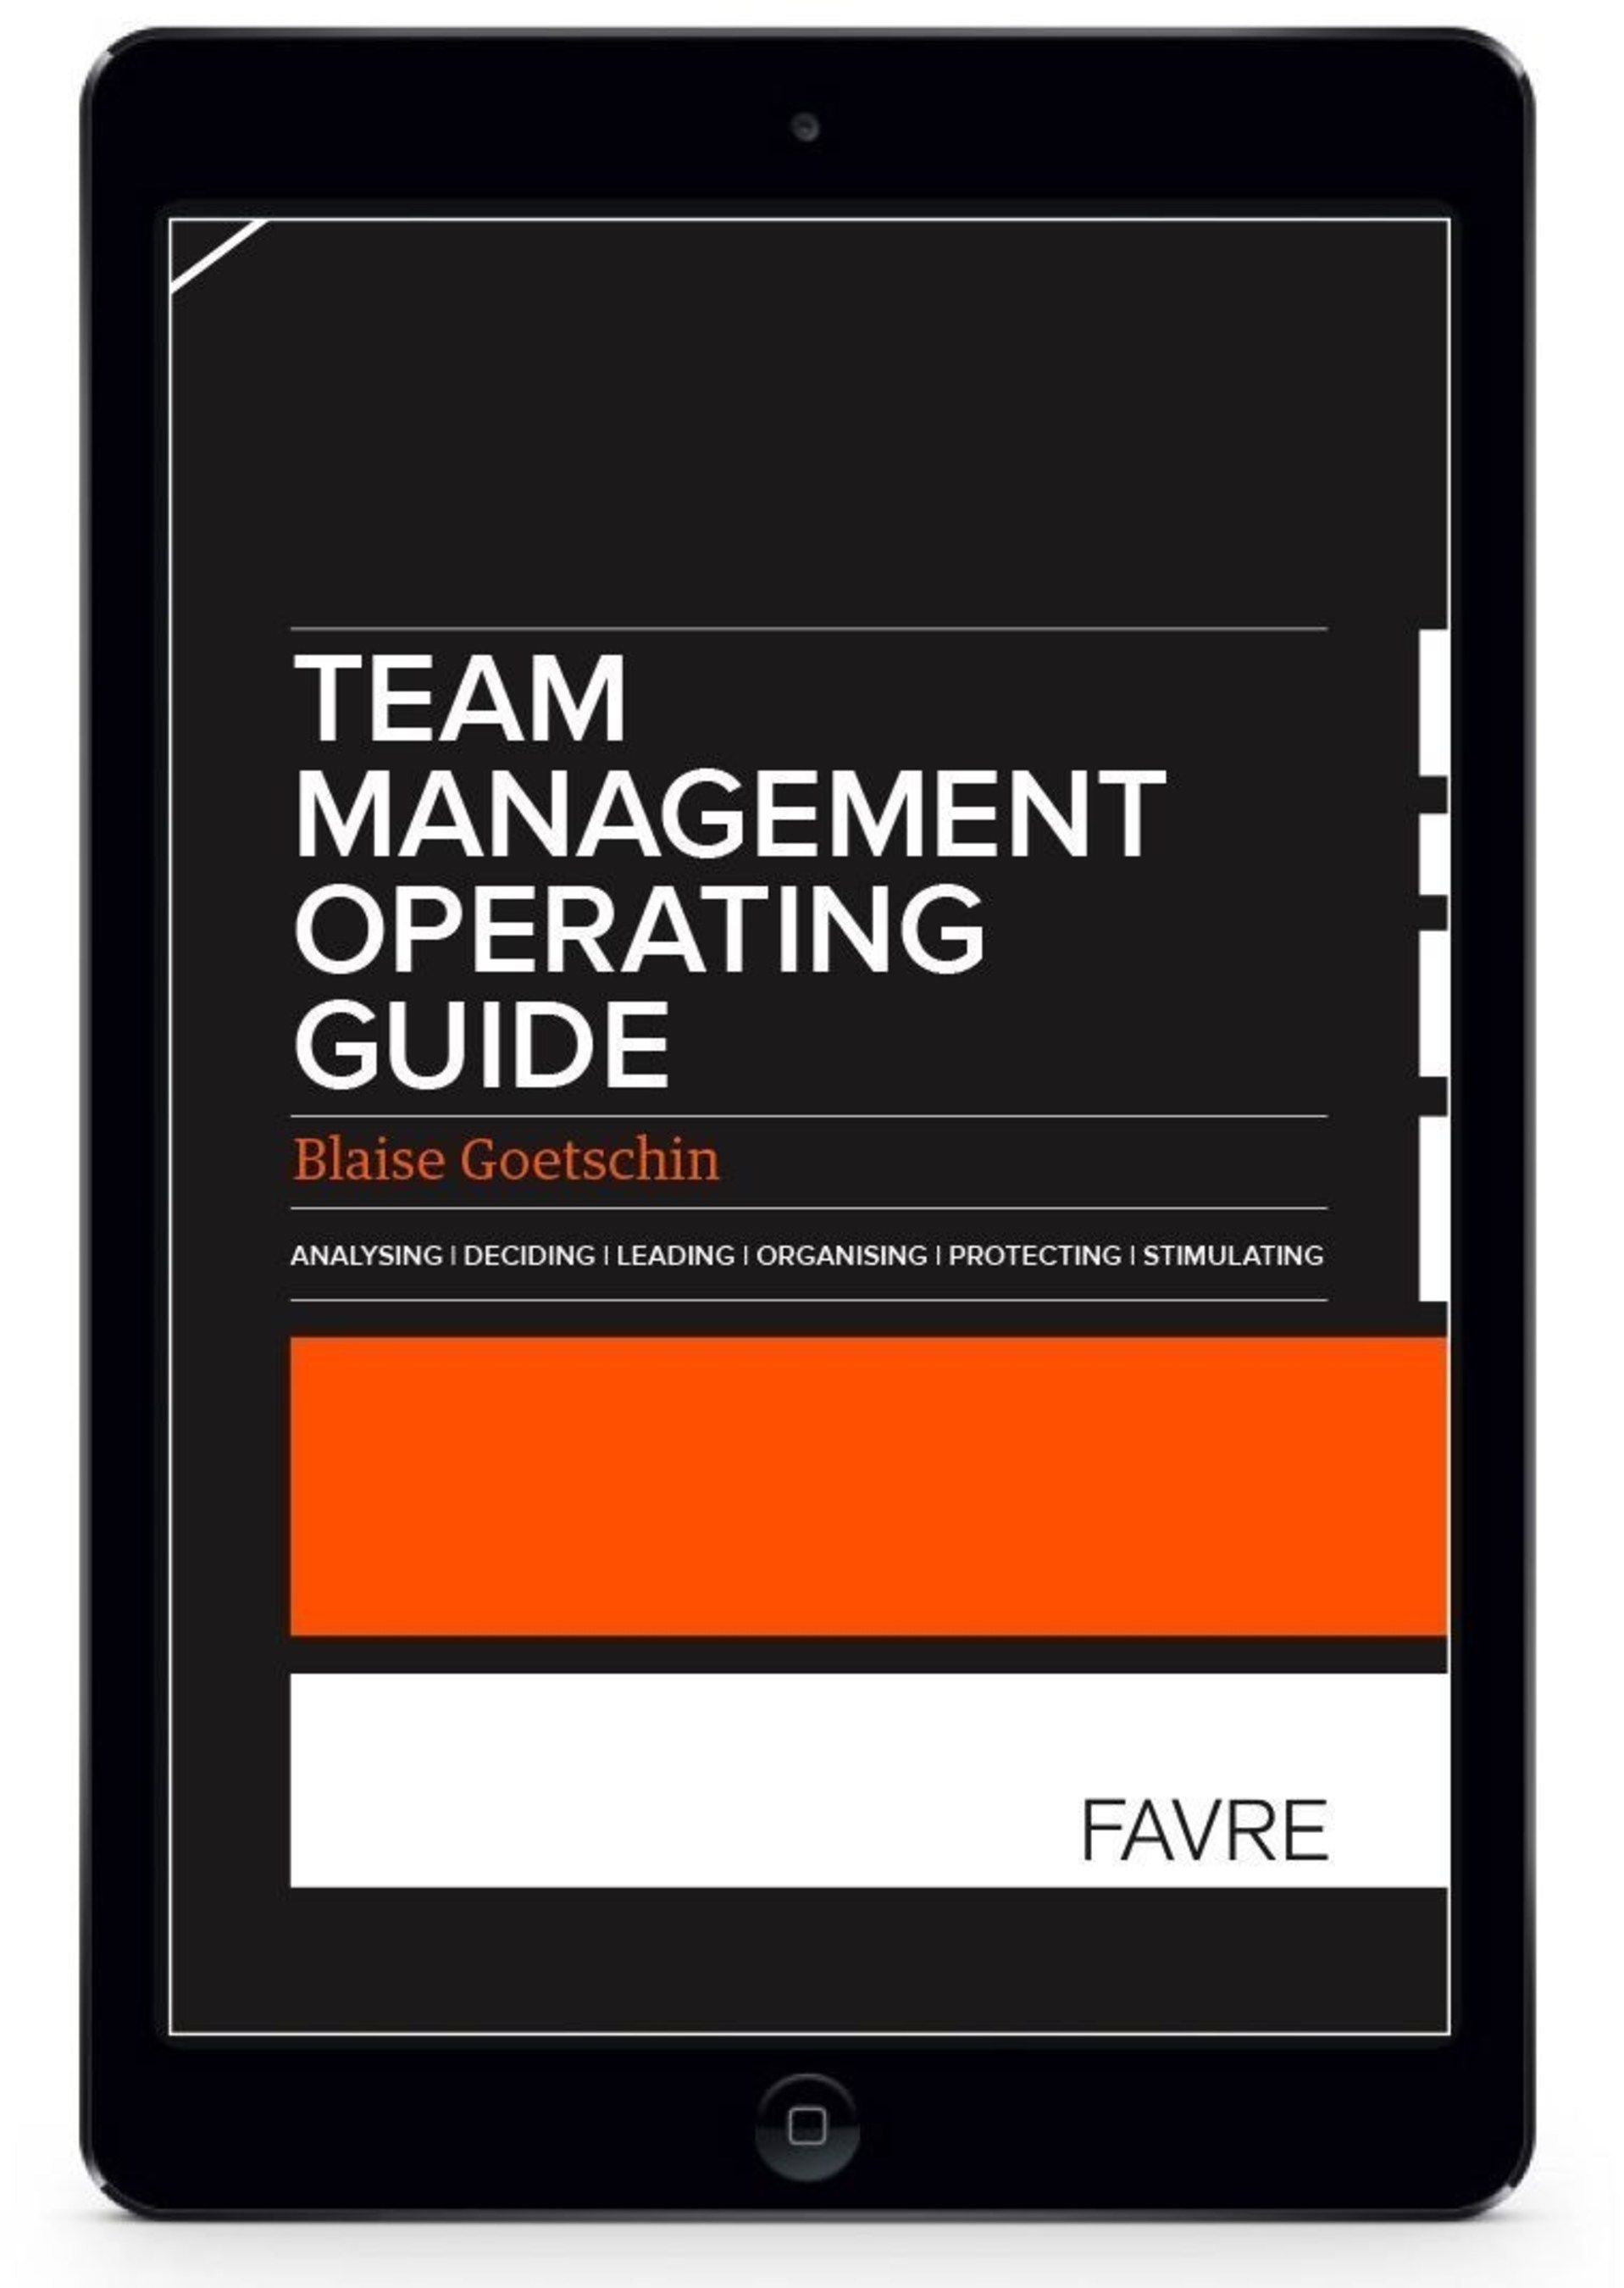 The Team management operating guide by Blaise Goetschin is an efficient tool to support business leaders in ...